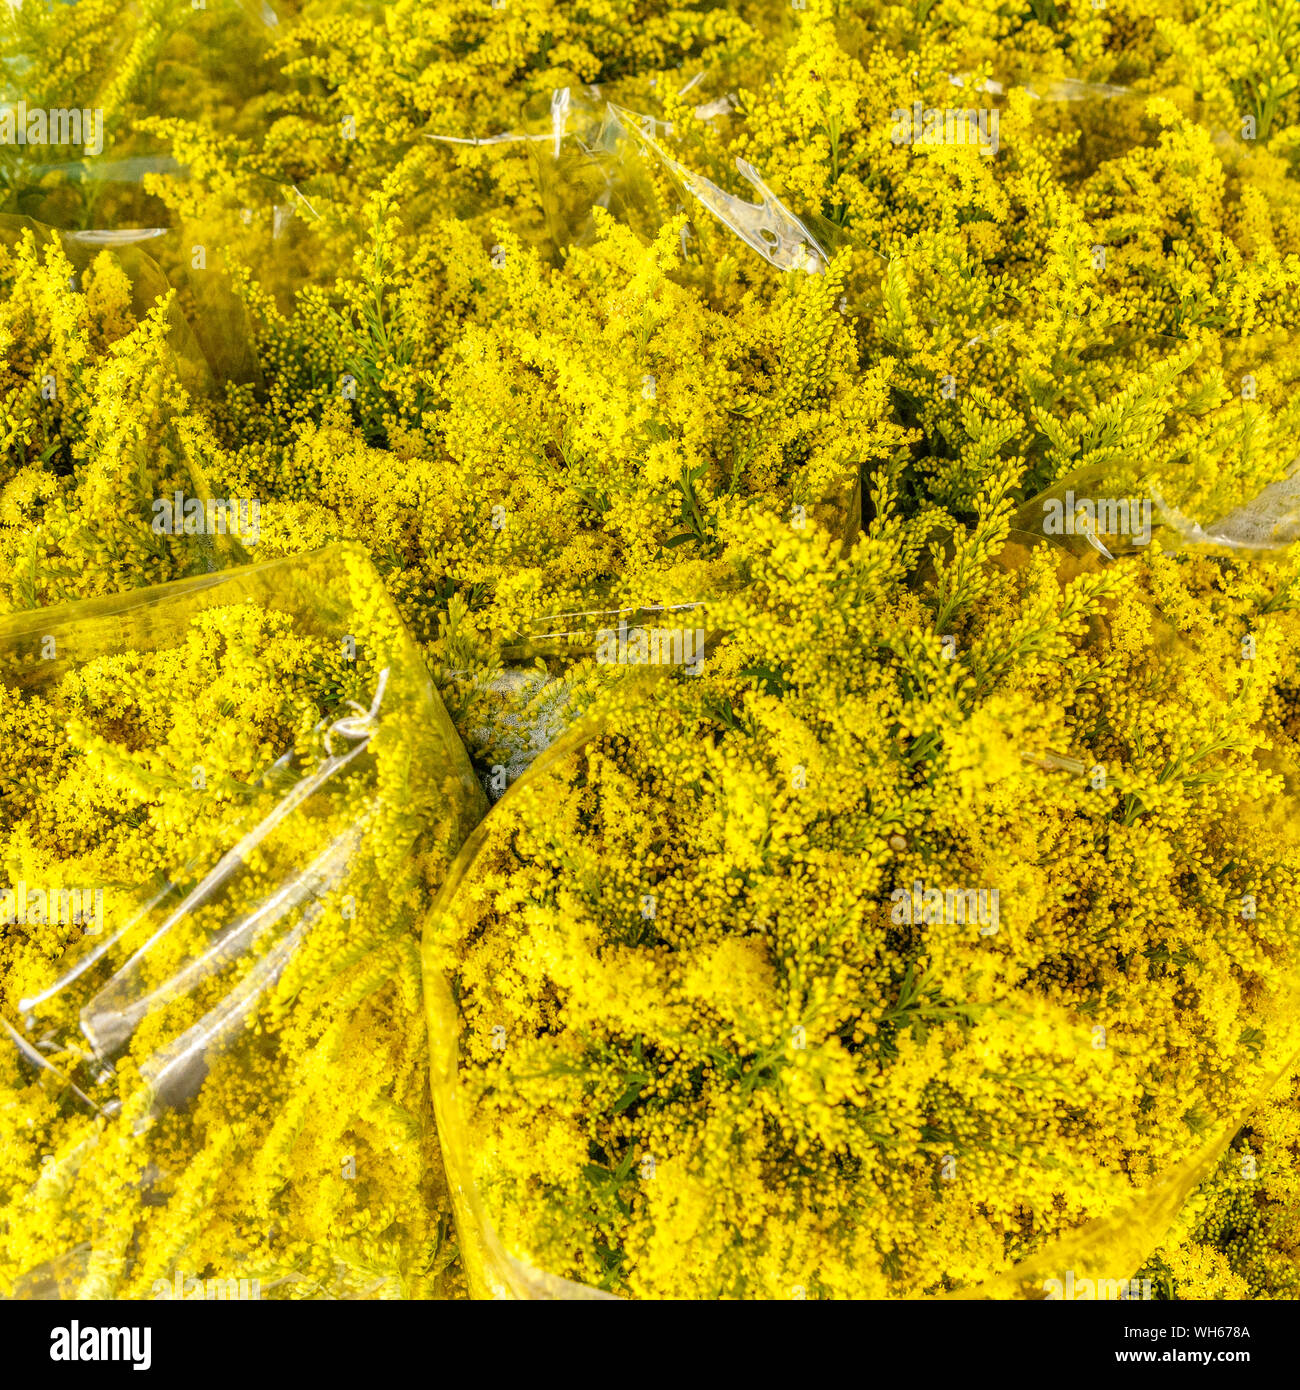 Bouquets of Solidago or goldenrods flowers at Pak Khlong Talat, famous flower market in Bangkok, Thailand. Stock Photo